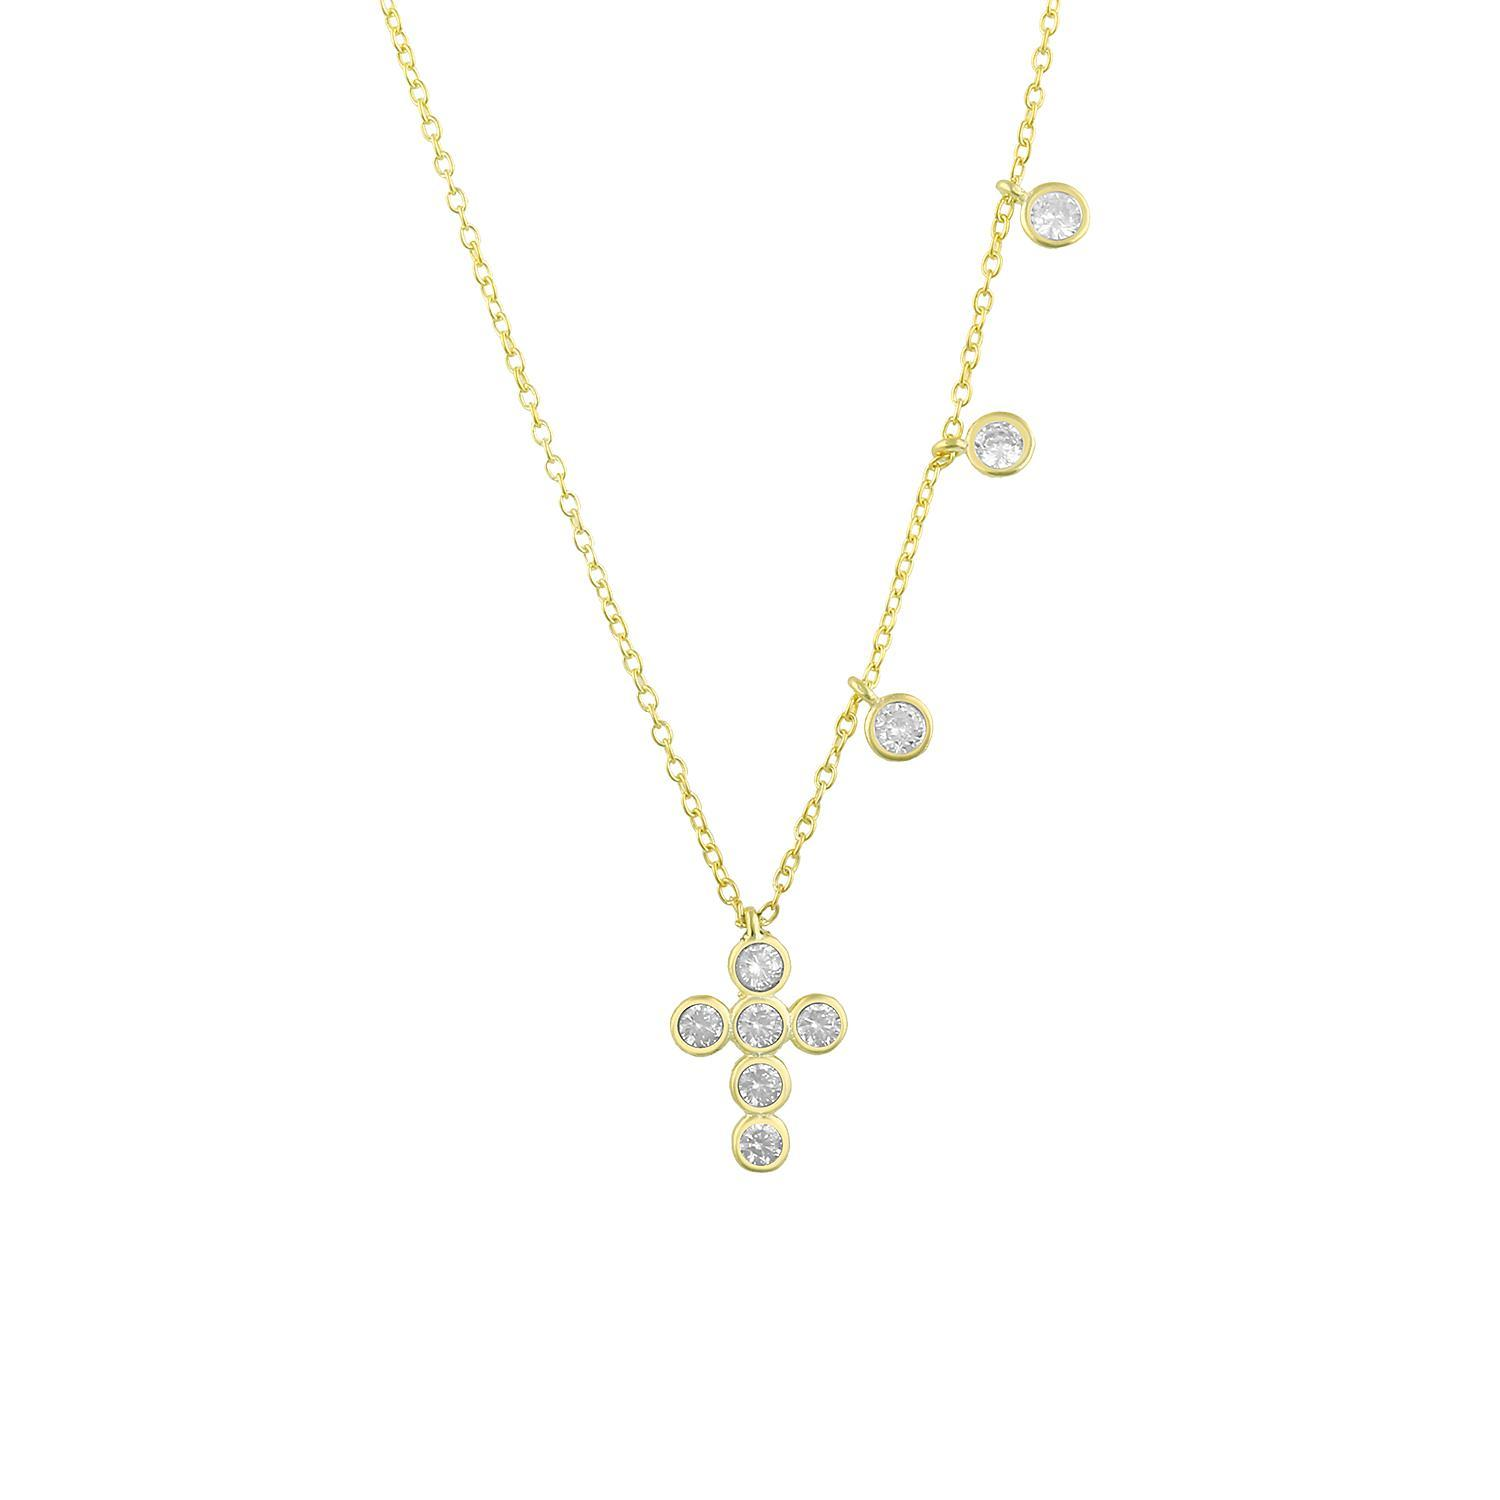 Dainty Crystal Cross and Charm Necklace